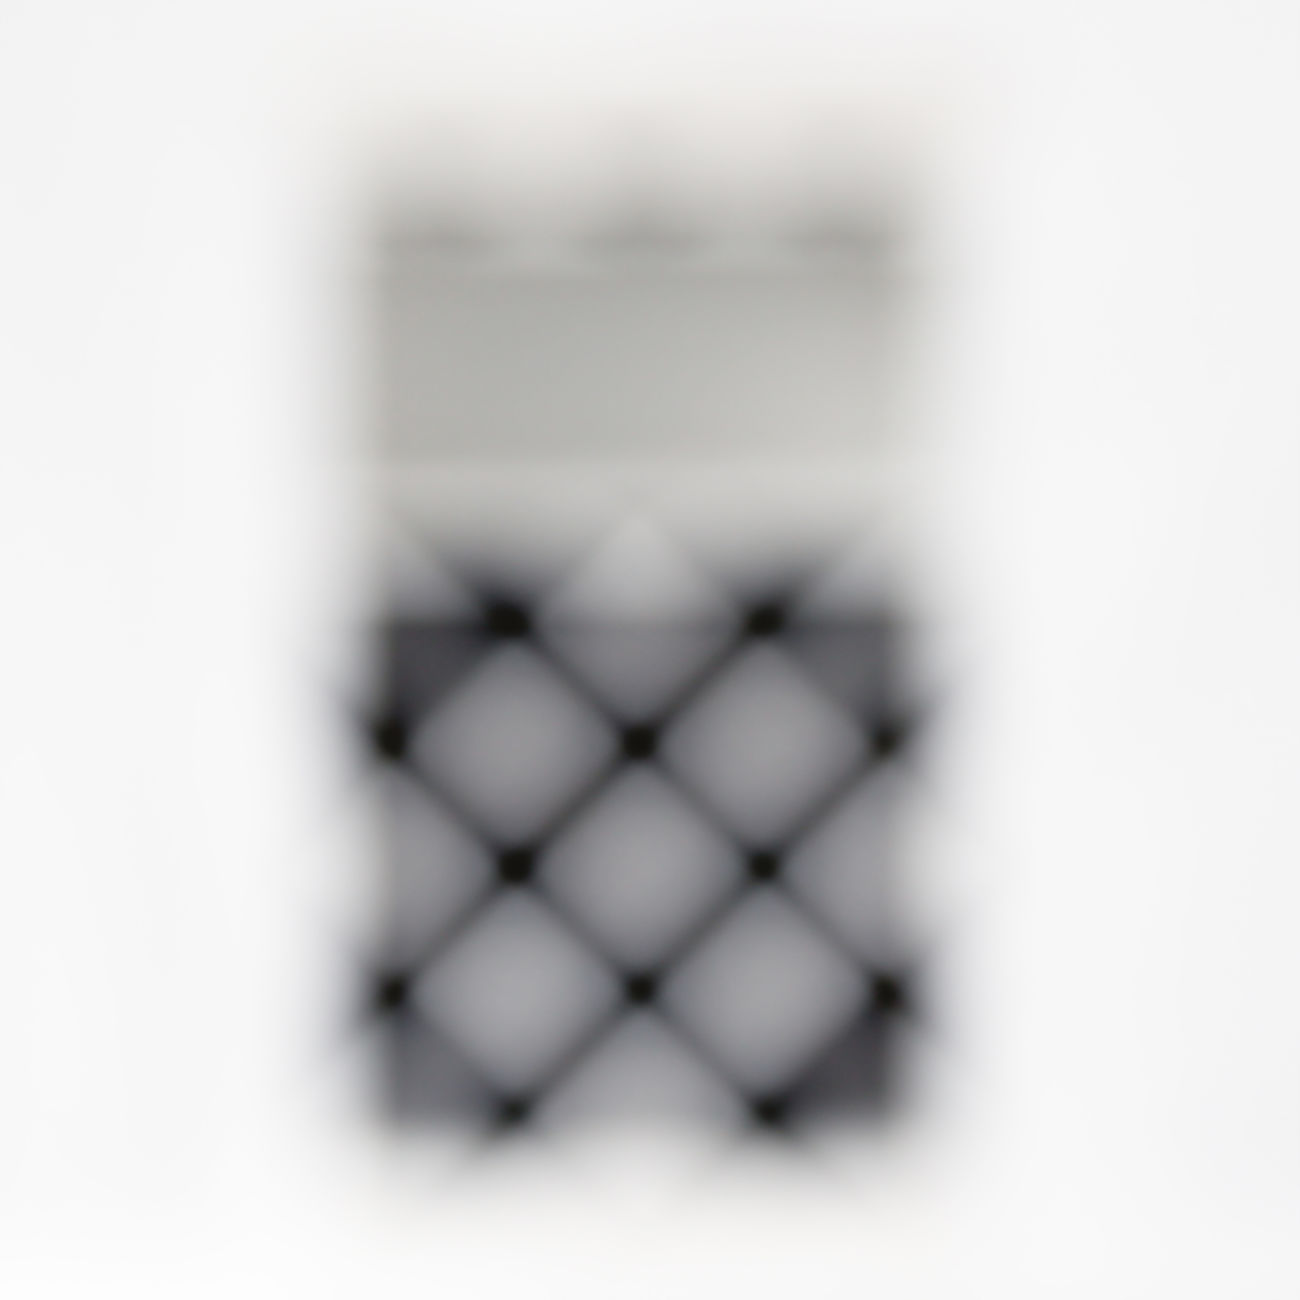 Art ArtWork Defocused Design Geometry Indoors  No People Pattern Pieces Square